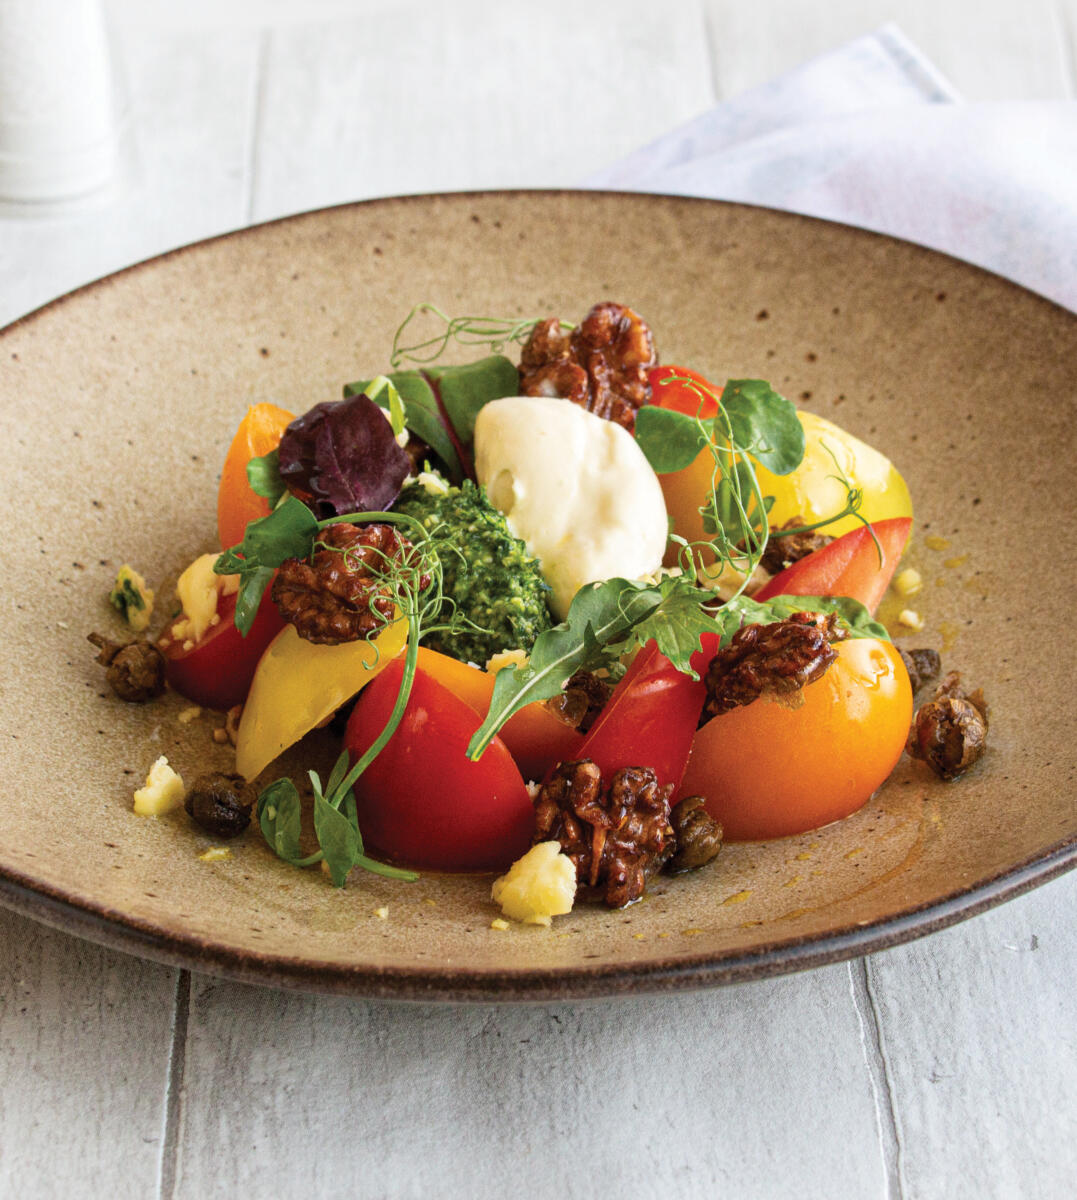 Heritage Tomato Salad with Yorkshire Wensleydale Pesto and Mousse